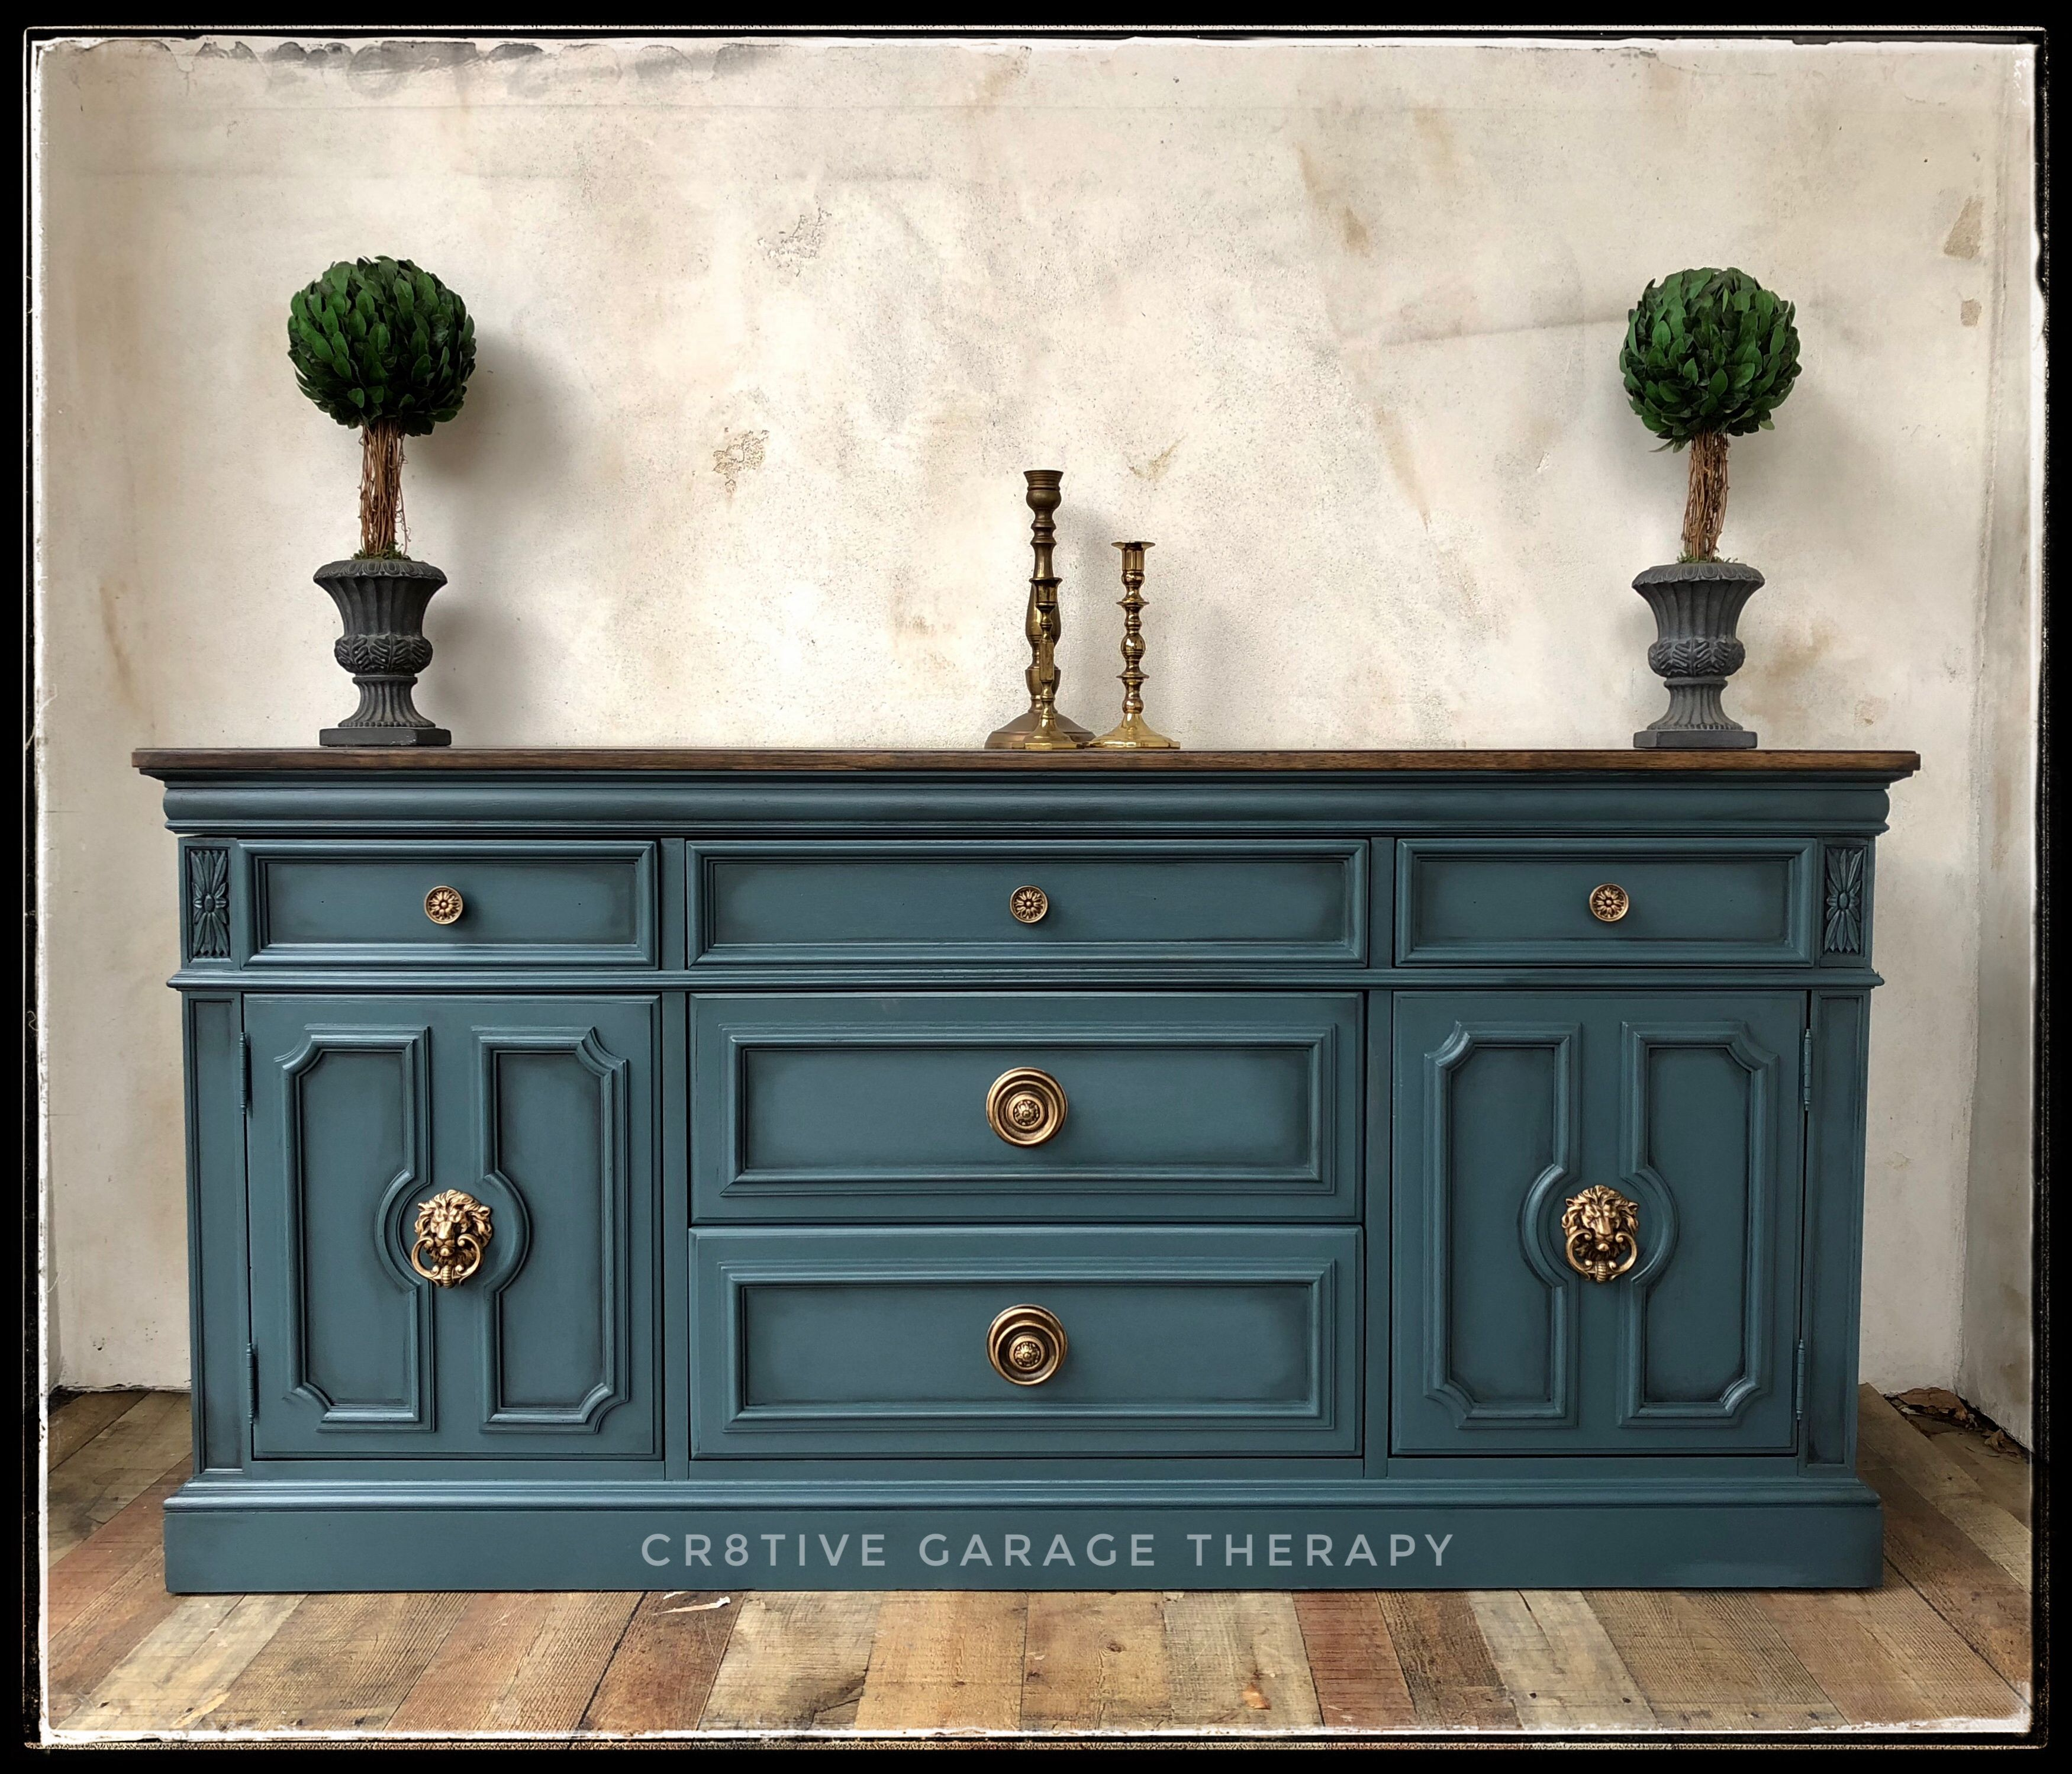 Painted Buffet Cr8tive Garage Therapy Photos Paint Furniture Painted Buffet Fusion Paint Furniture Paint Furniture